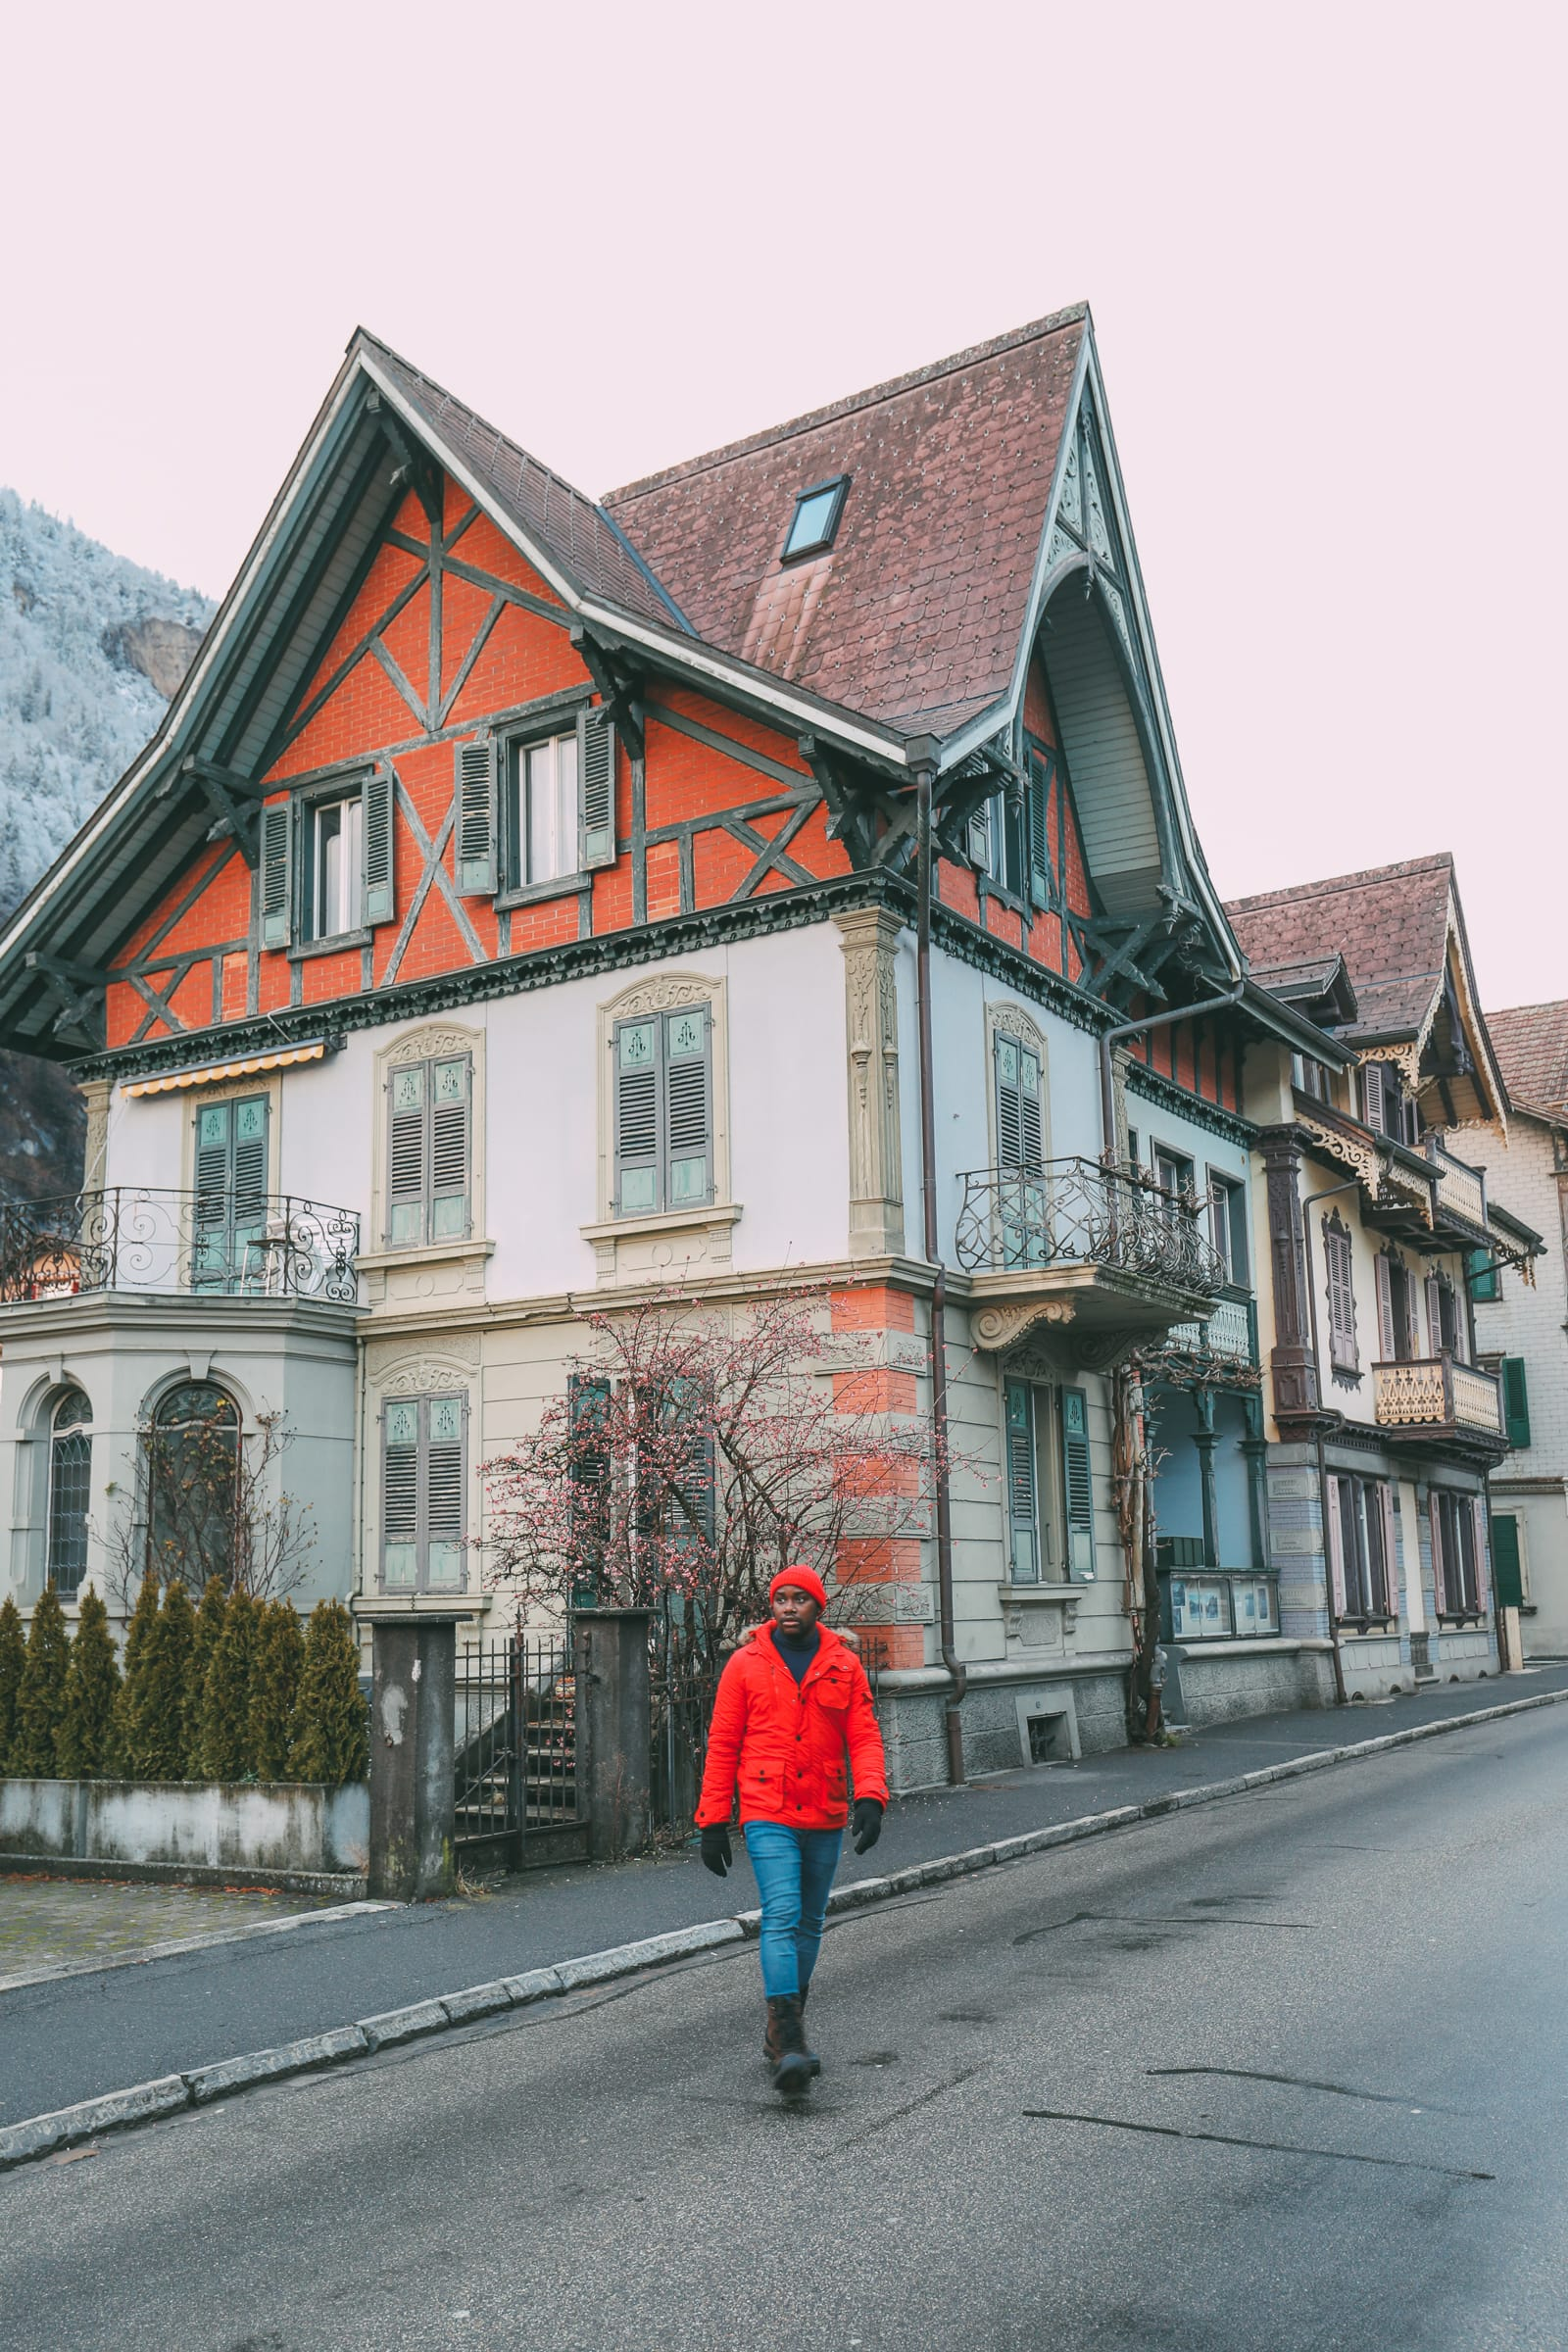 A Journey To Jungfraujoch And The Beautiful Town Of Interlaken, Switzerland (64)